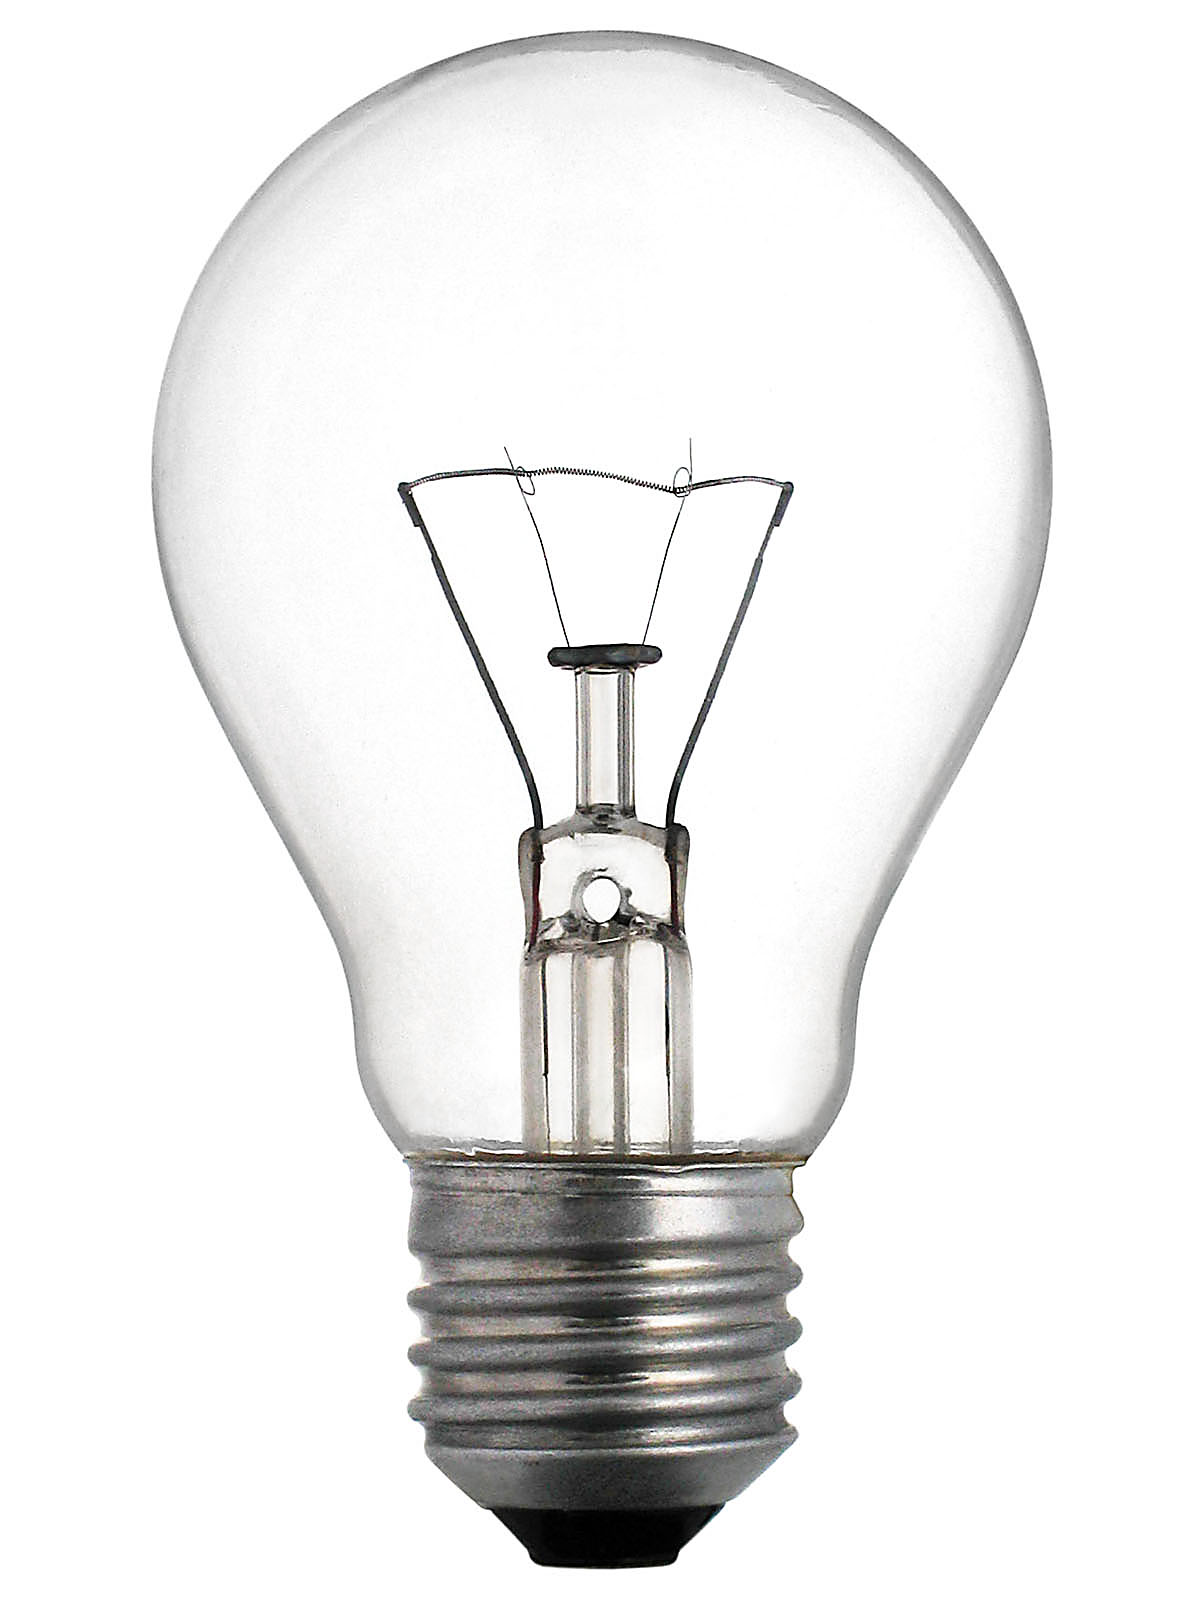 Highschool physics incandescent lamp series and parallel connection Tungsten light bulbs